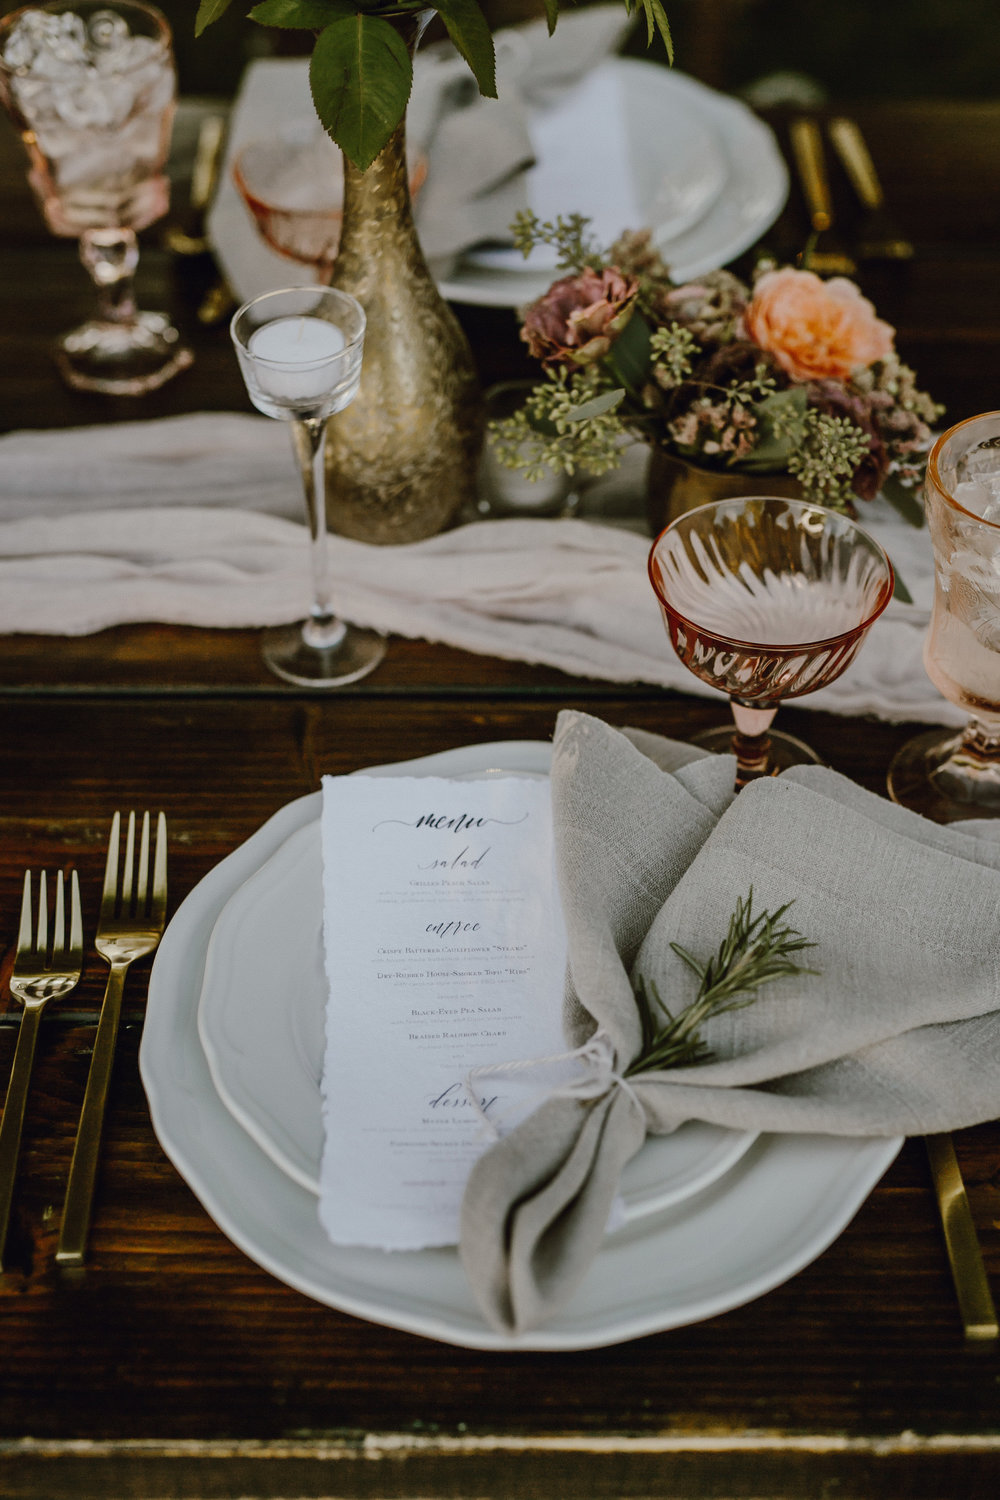 wedding day  - Personal Menus, Programs, Favor Tags, and More